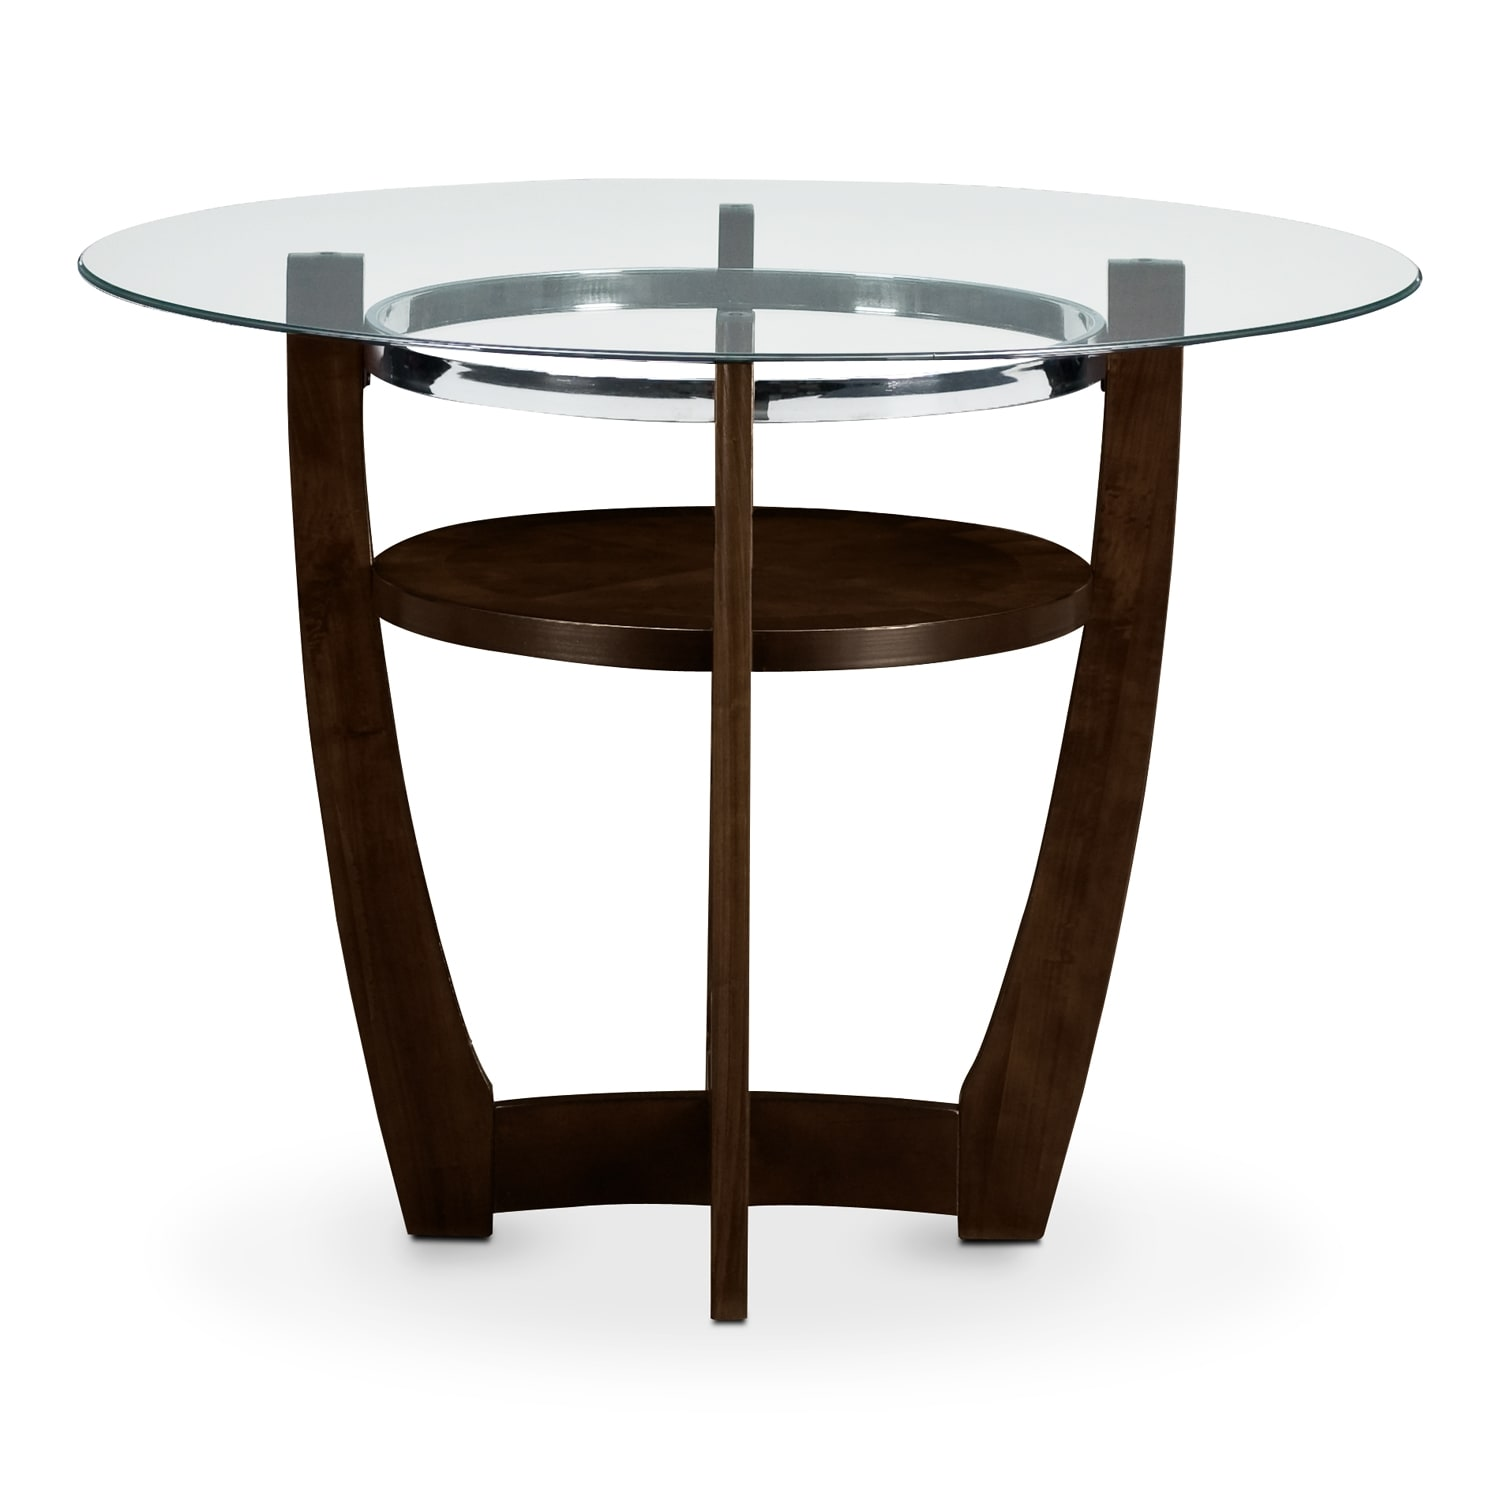 Alcove Counter Height Table Value City Furniture : 276236 from www.valuecityfurniture.com size 1500 x 1500 jpeg 107kB